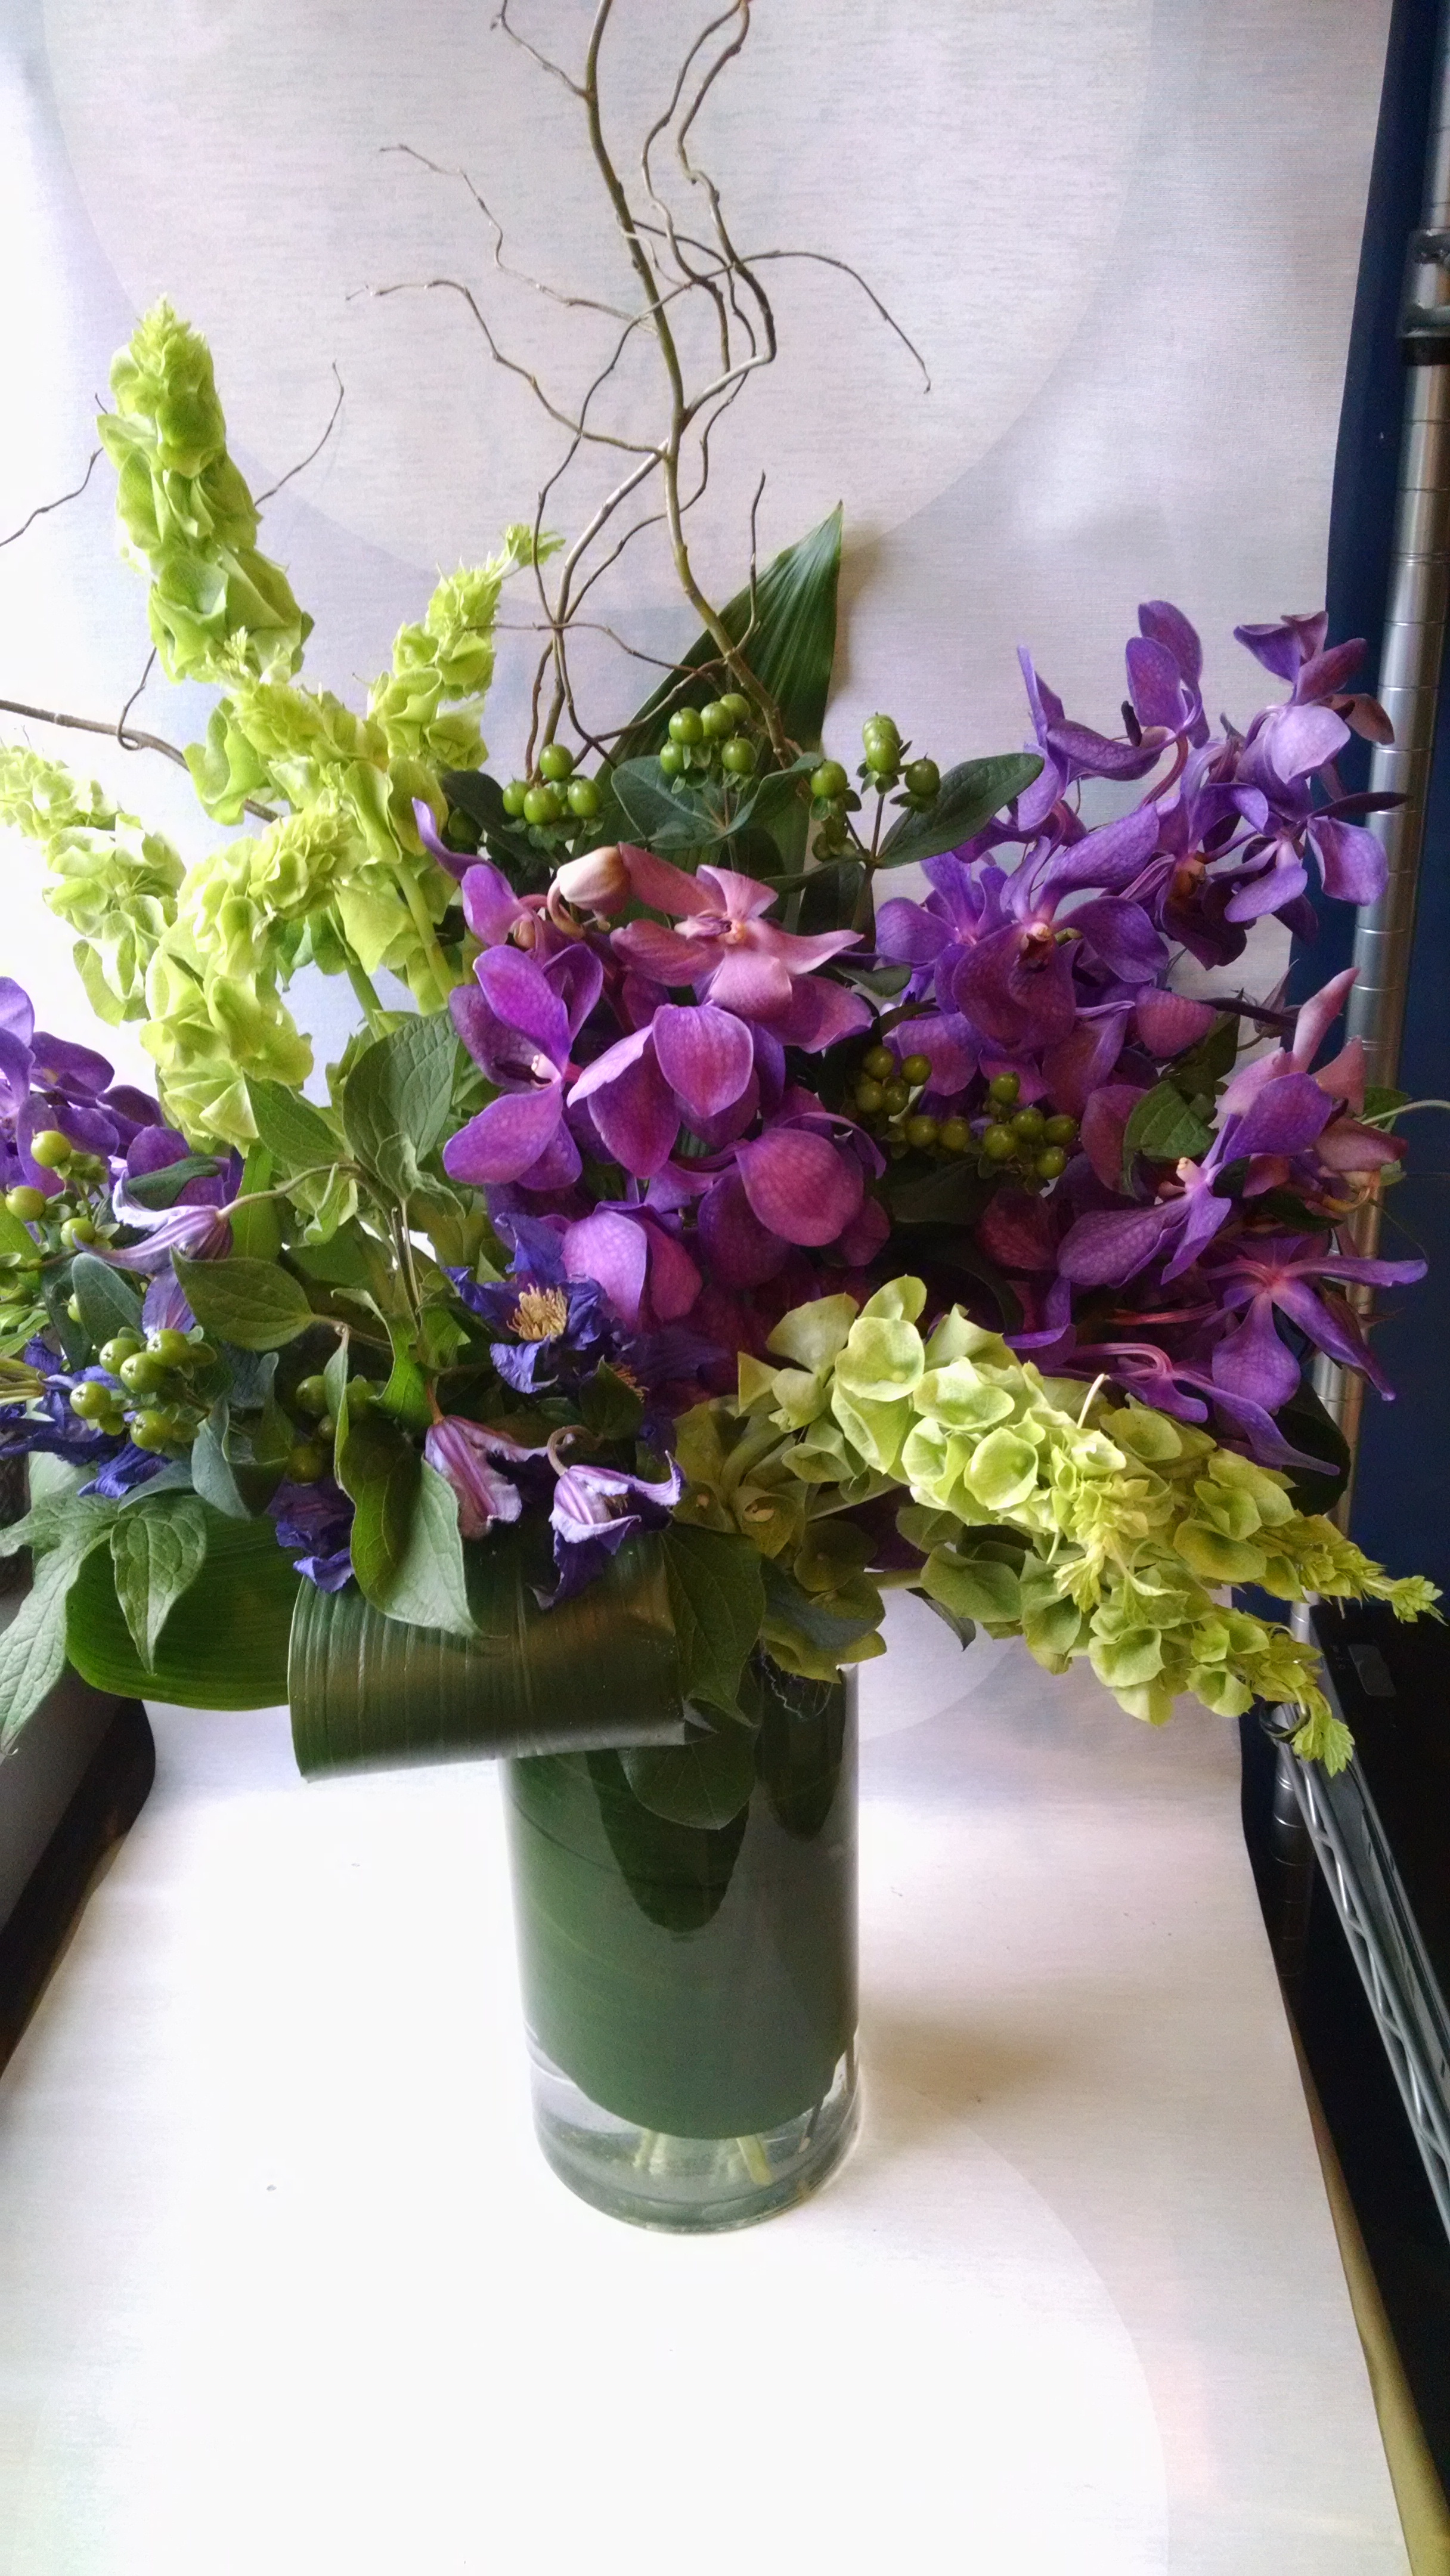 Purple orchid bright flowers orchid arrangements tall vases purple orchid bright flowers orchid arrangements tall vases minneapolis twin cities flower delivery downtown florist purple orchid flowers reviewsmspy